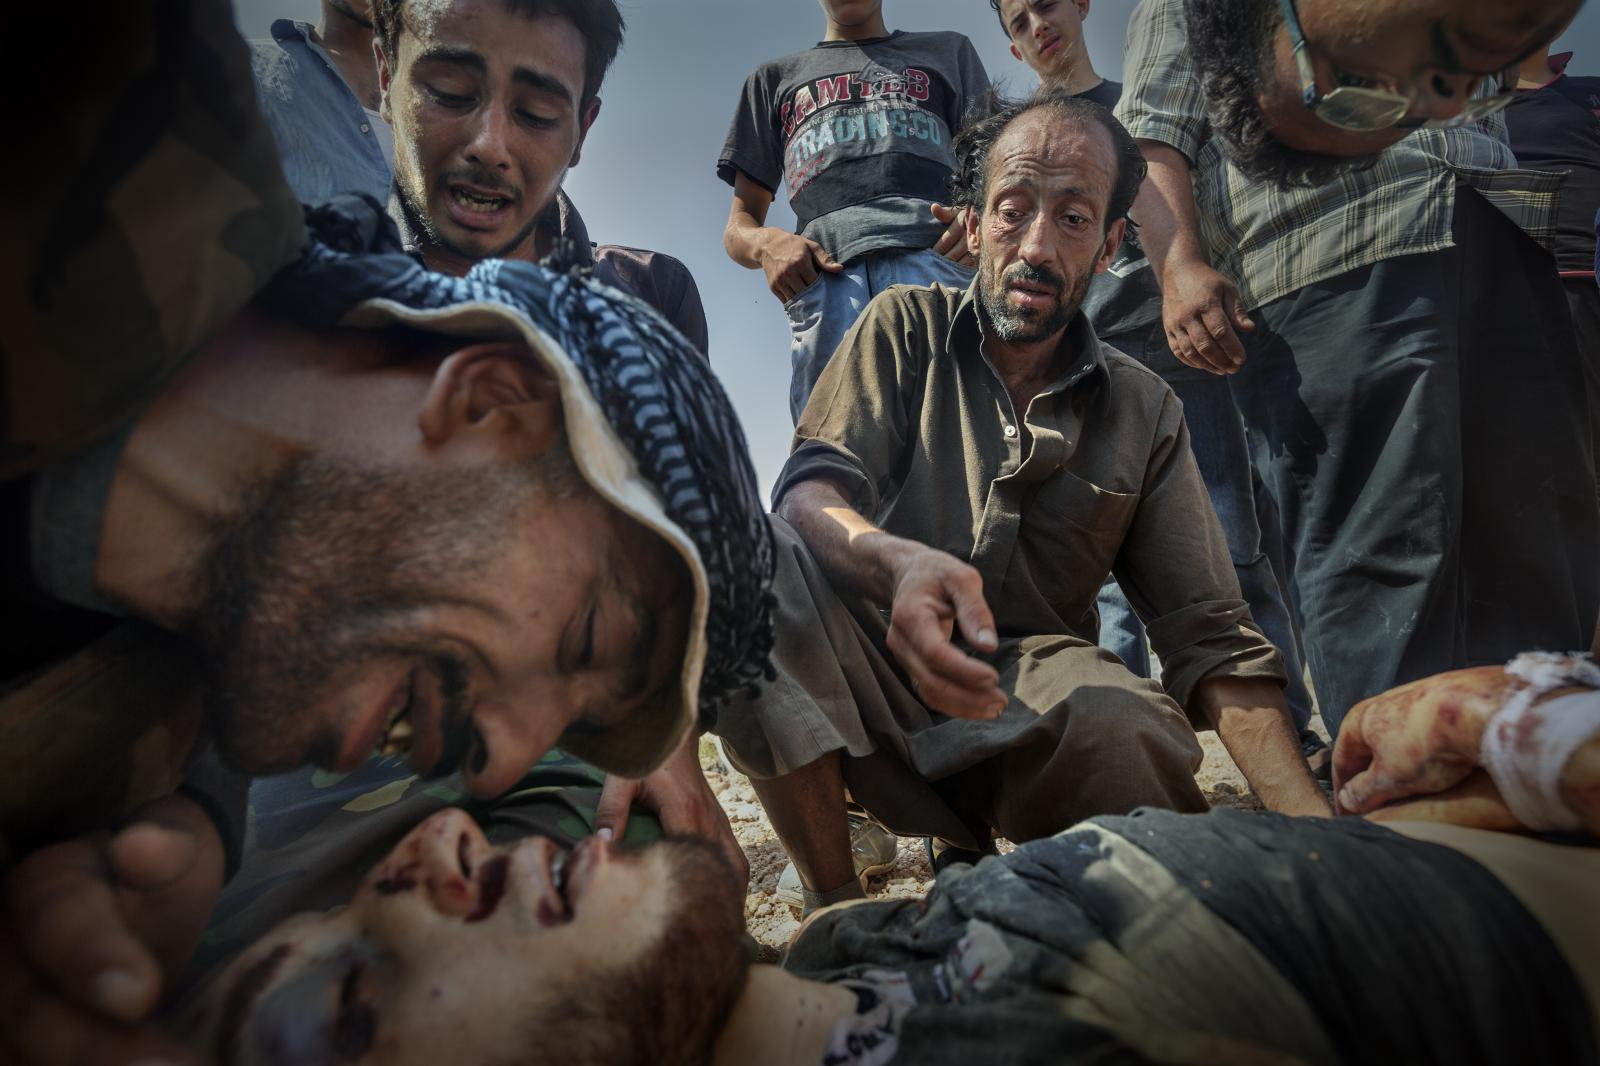 A father cries over his son killed by a government helicopter, at a cemetery on the outskirts of the city. The victim's brother cries with him. He was trying to save a child wounded by a helicopter and the helicopter fired, killing them both. Aleppo (Syria, 2012)